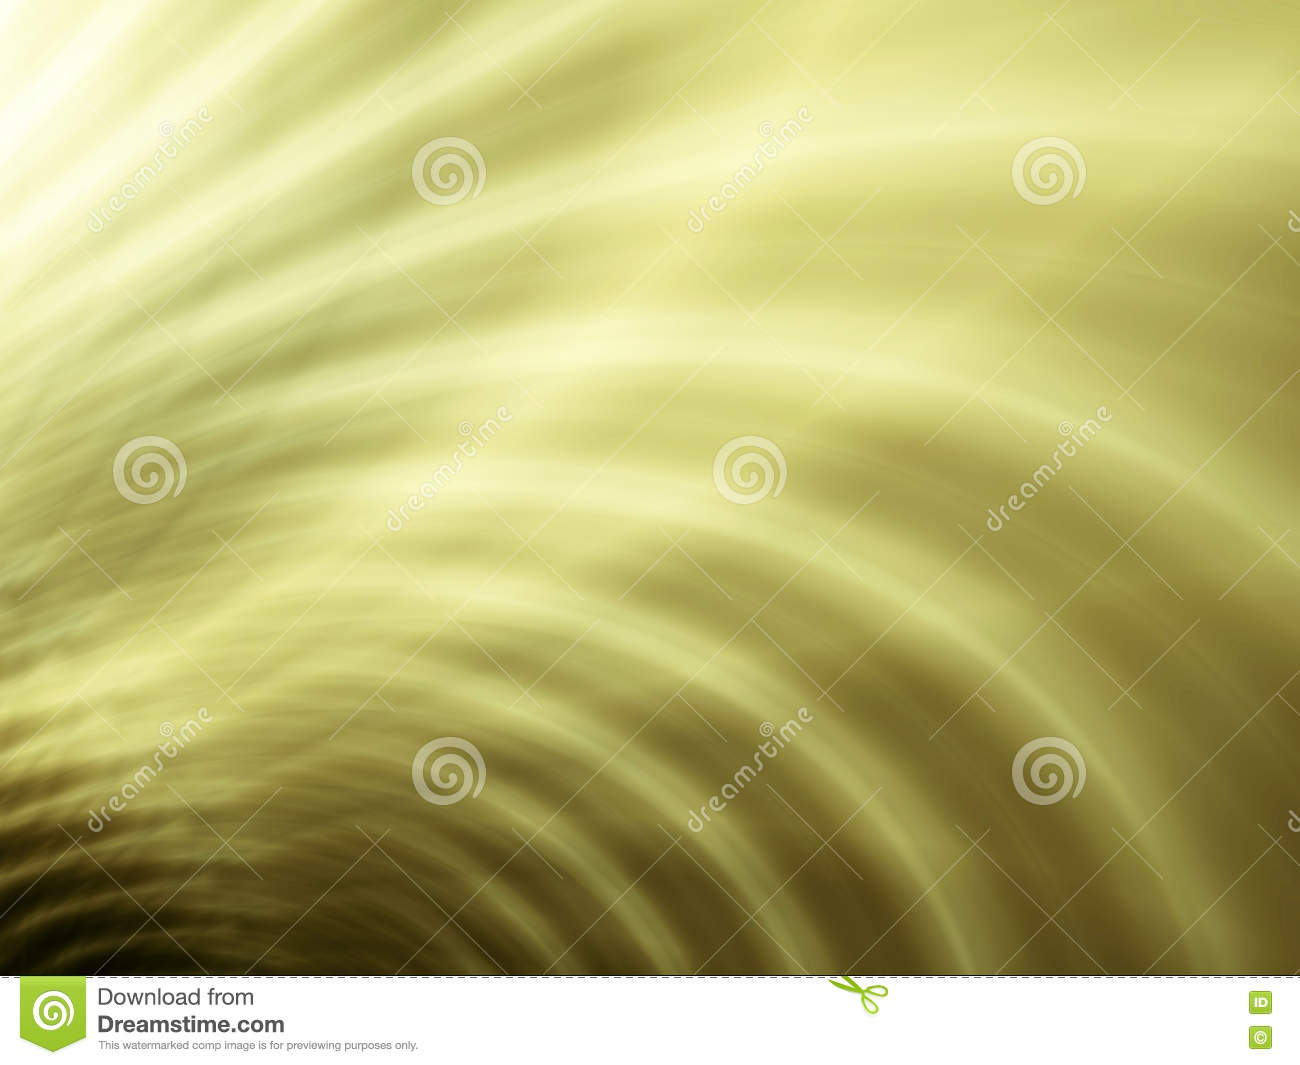 Green Bright Olive Abstract Texture Wallpaper Stock